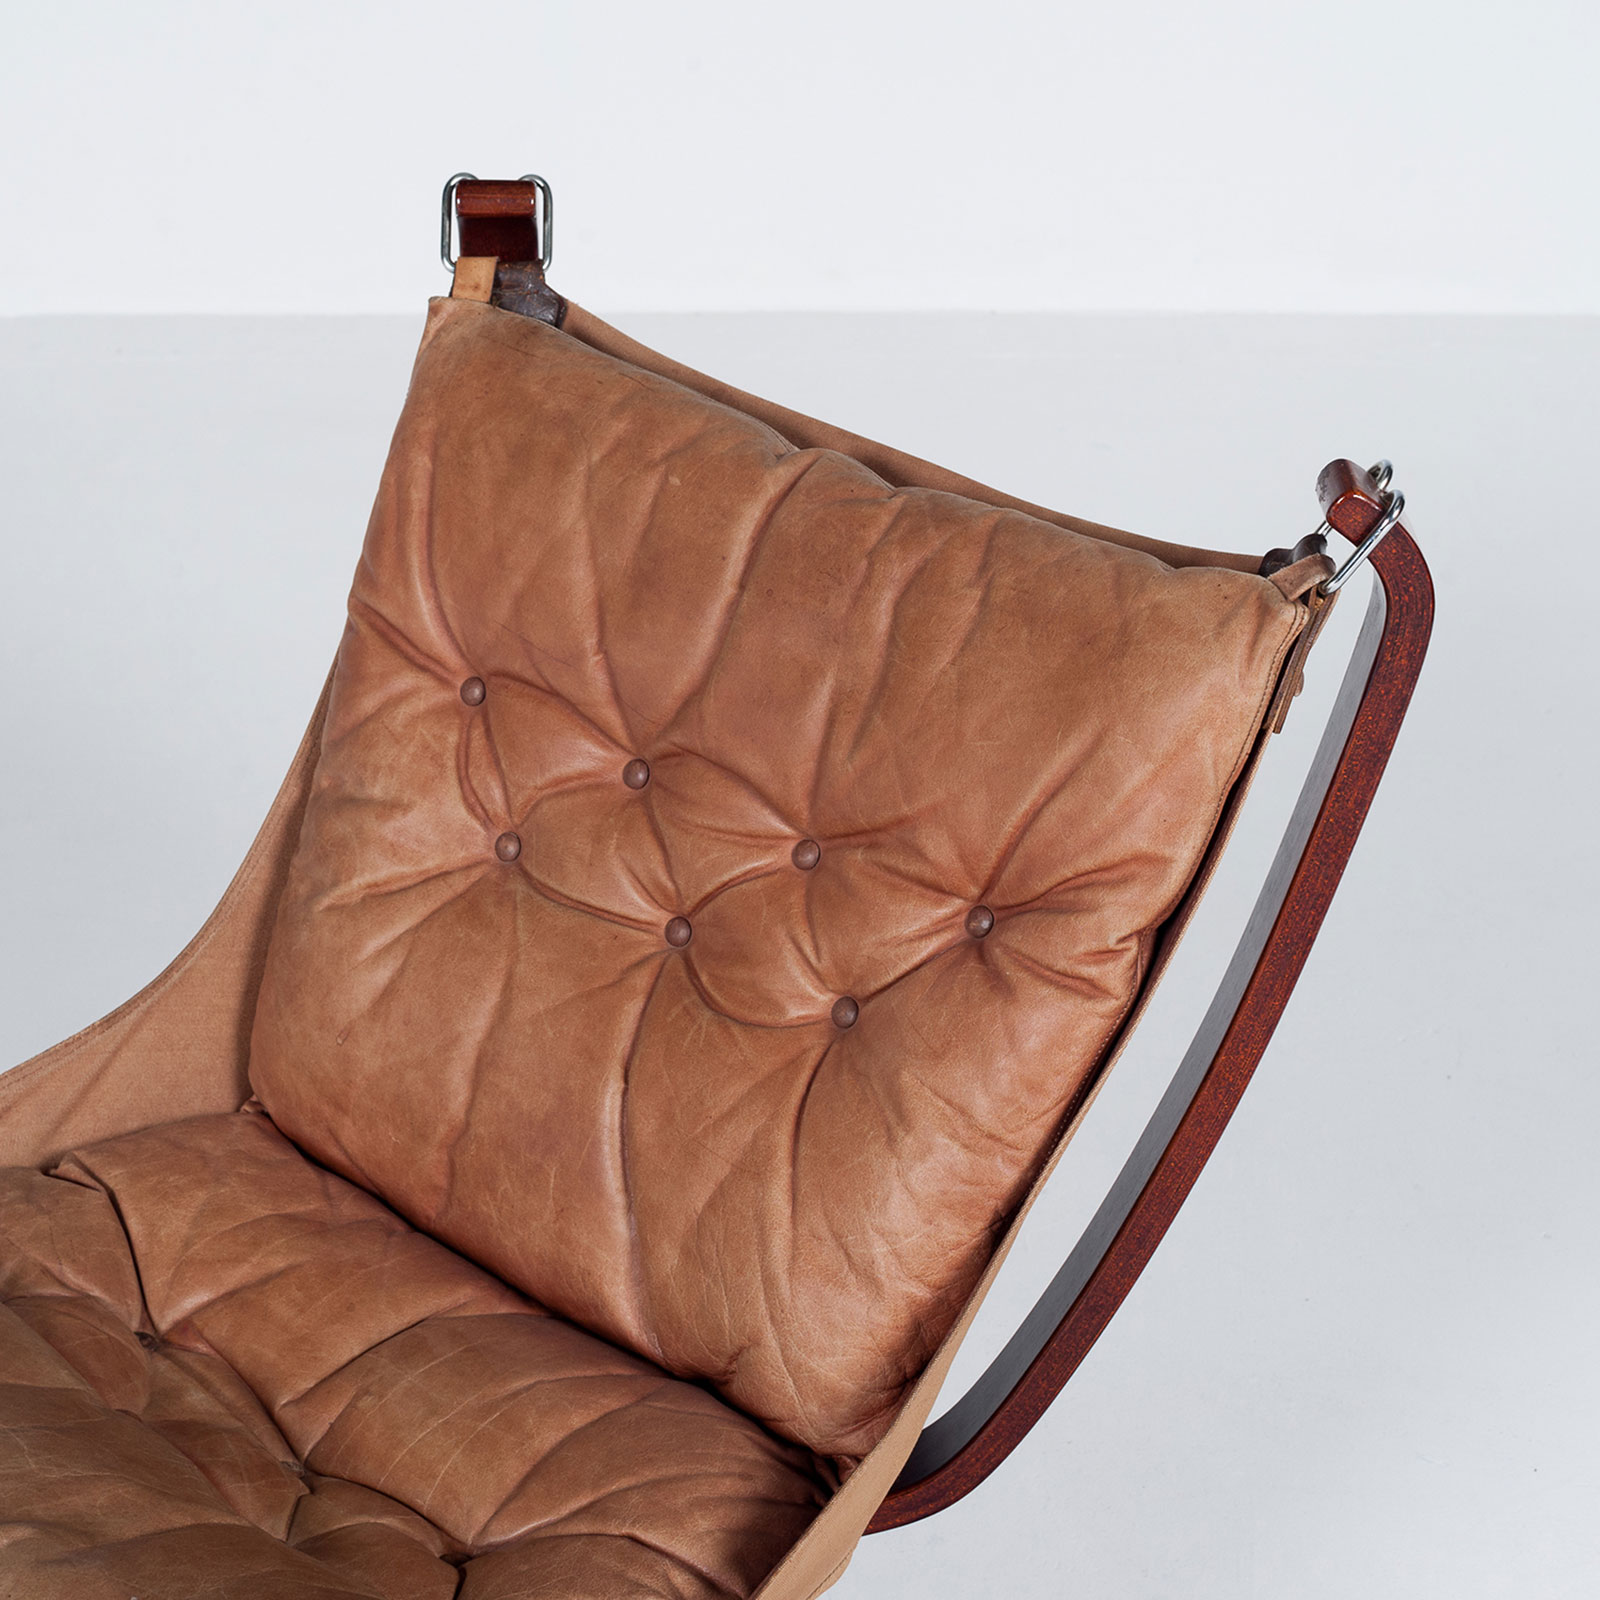 Low Back Falcon Armchair In Tan Leather By Sigurd Ressell For Vatne Mobler, 1971, Norway6705